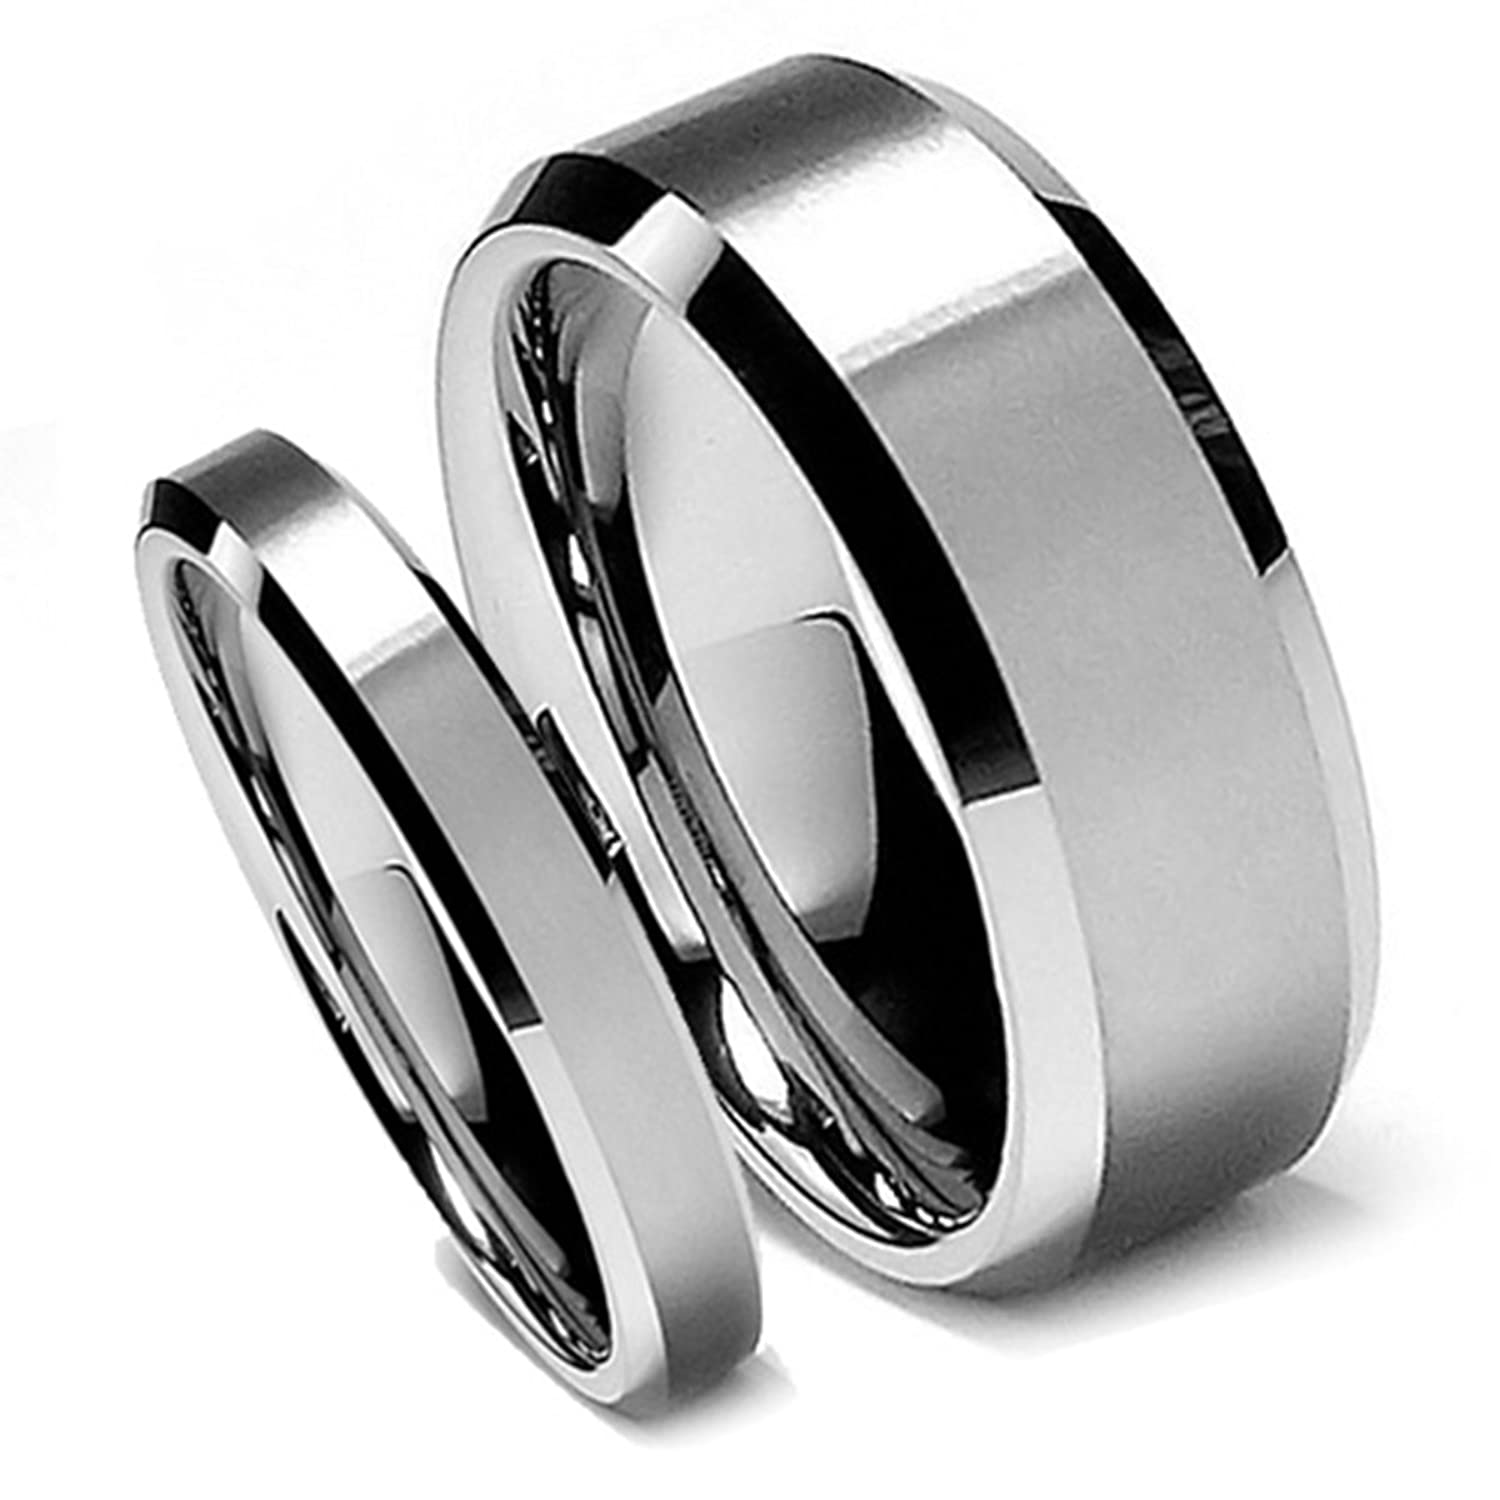 gold and rose men collections with upright rings edges tone w women for products matching ring wholesale brushed three tungsten black large band wedding silver finish couple bands stepped satin photo